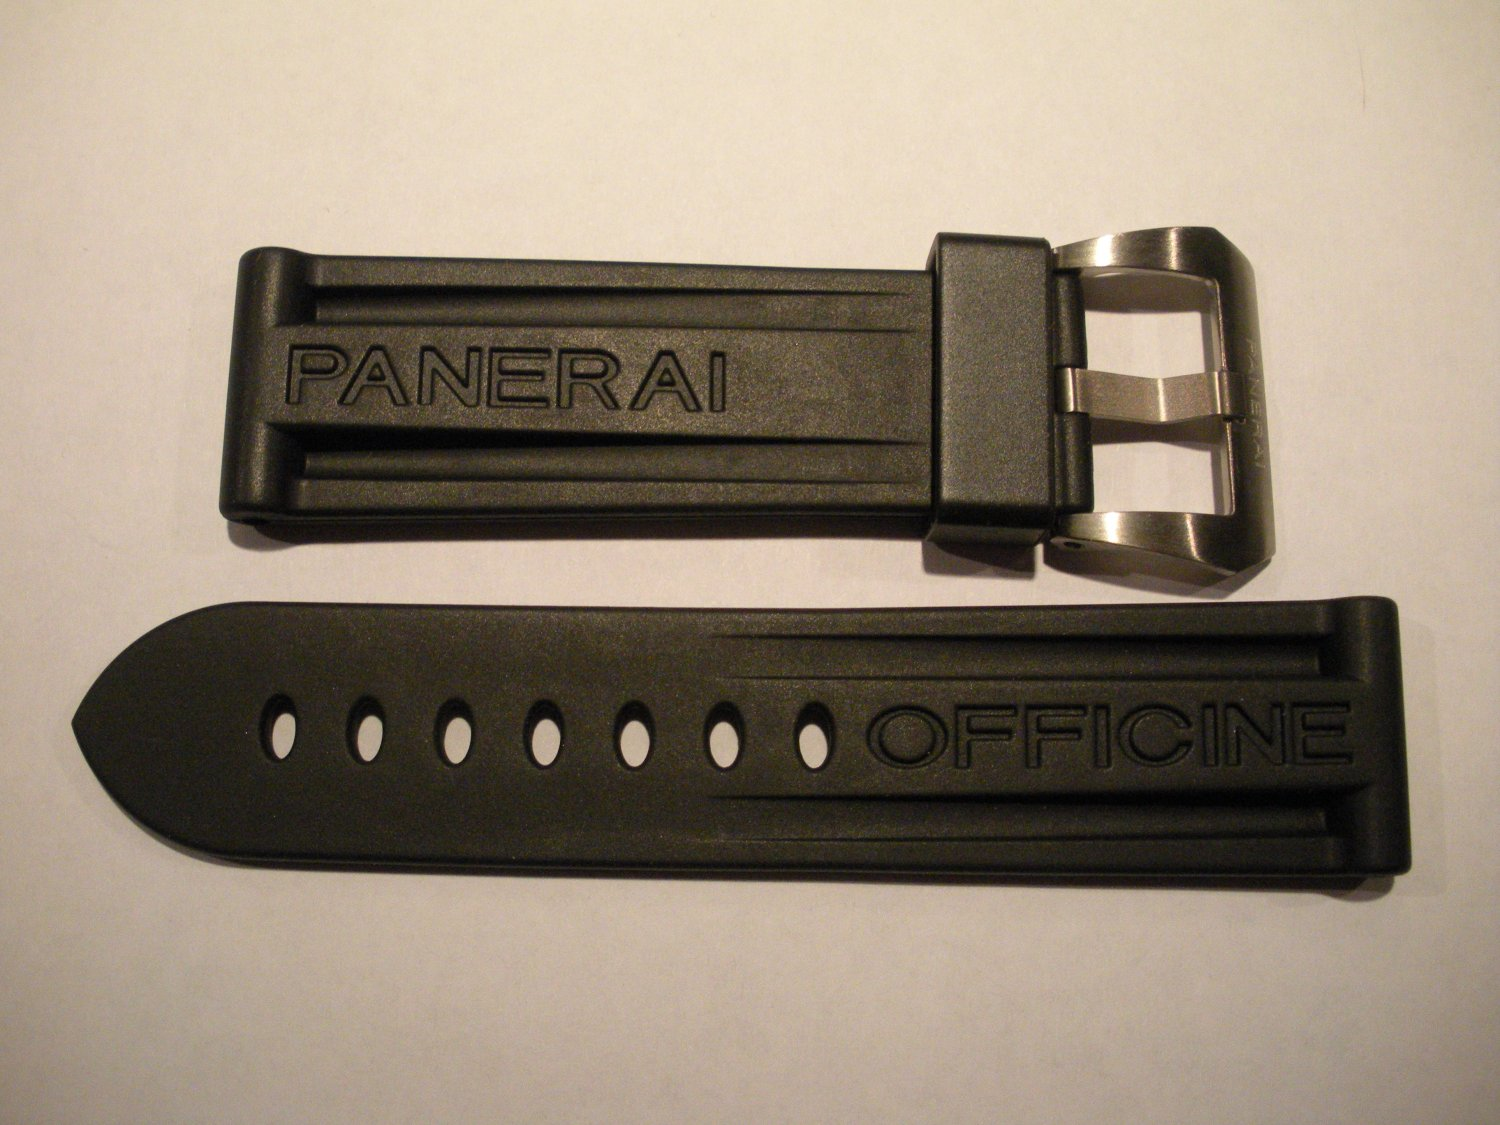 24mm Black Rubber Dive Strap w/ Titanium Buckle for Panerai